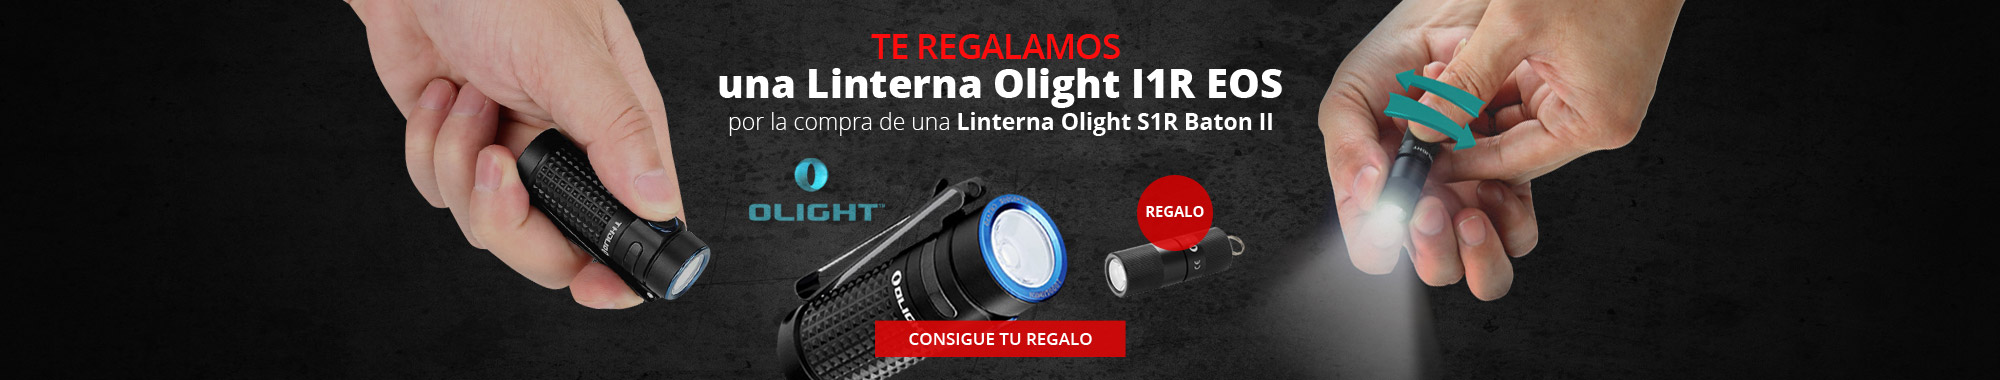 Regalo linterna l1R Olight